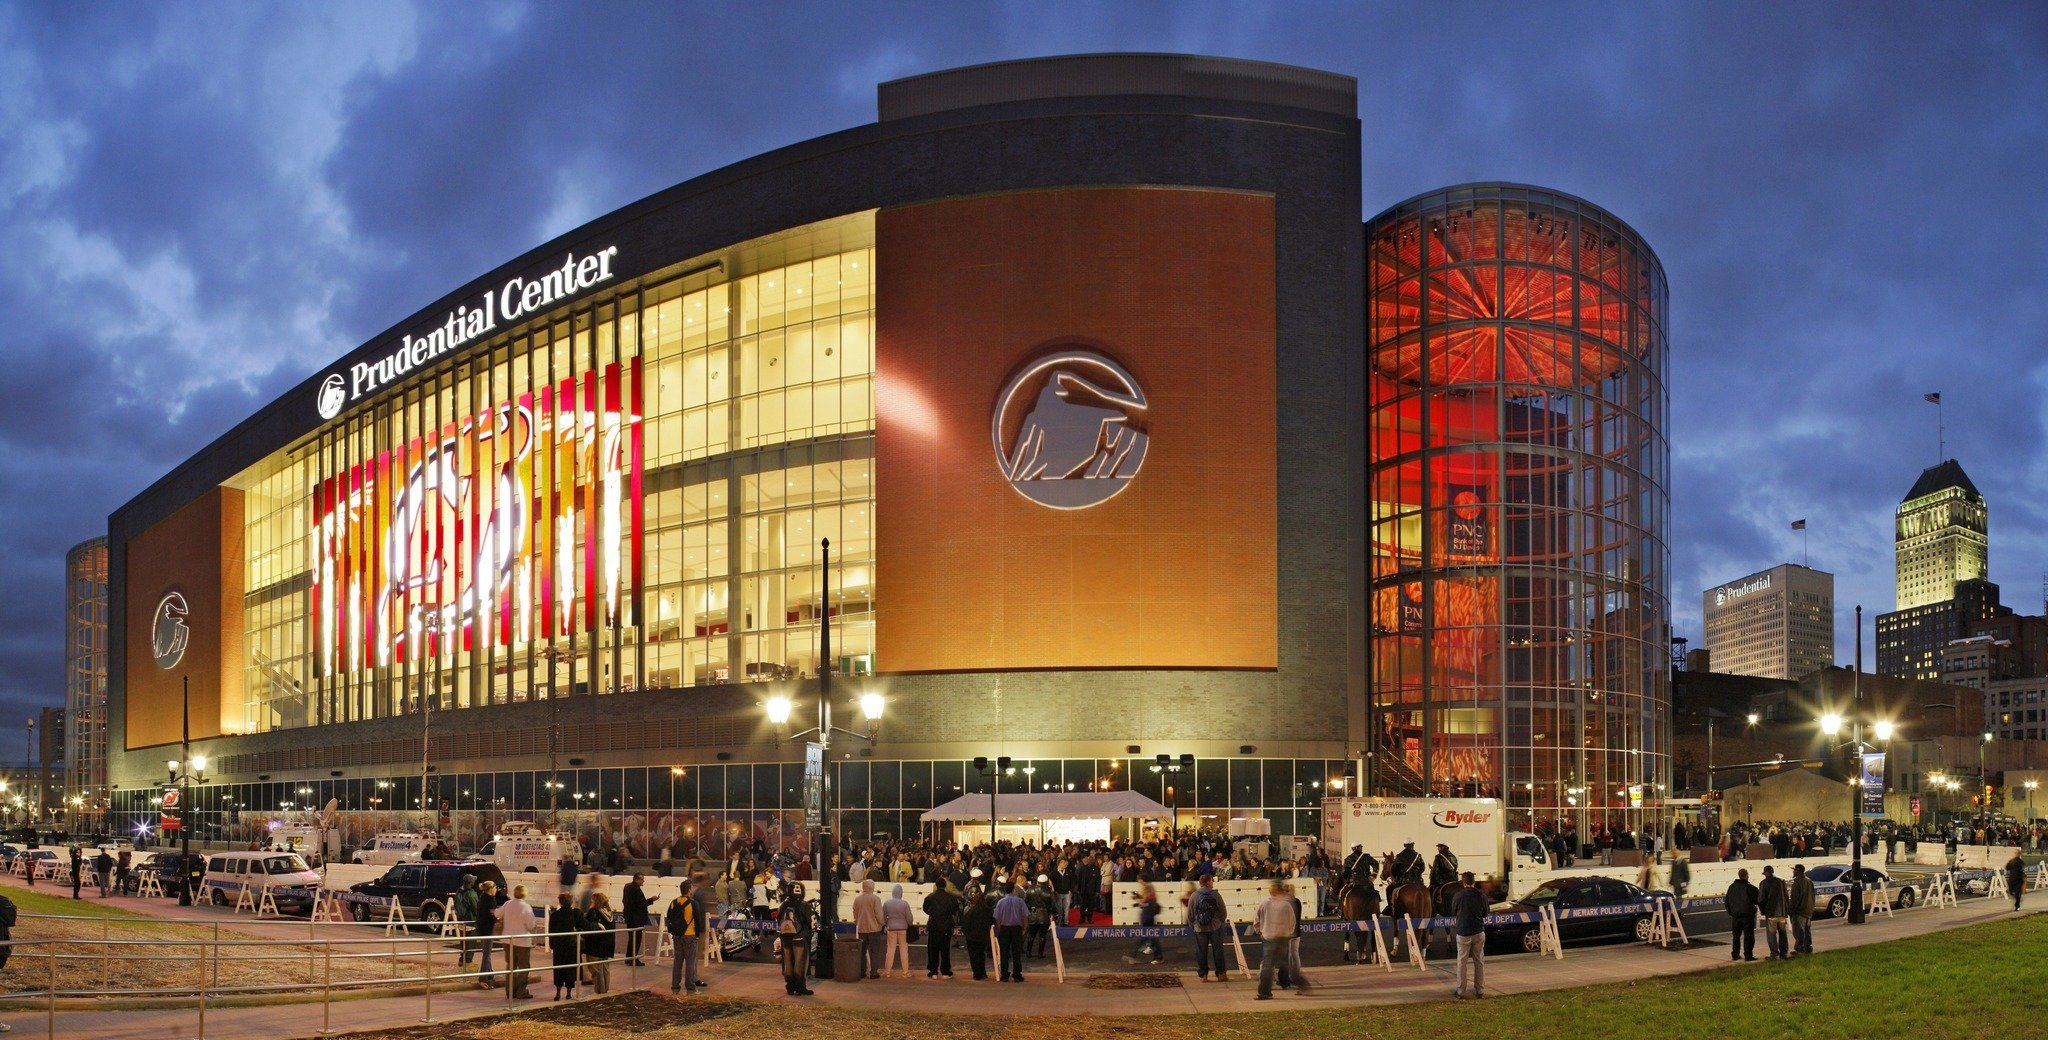 The Prudential Center Has Lots Of Concerts And Is The Home Of The New Jersey Devils Newark Ferry Building San Francisco Prudential